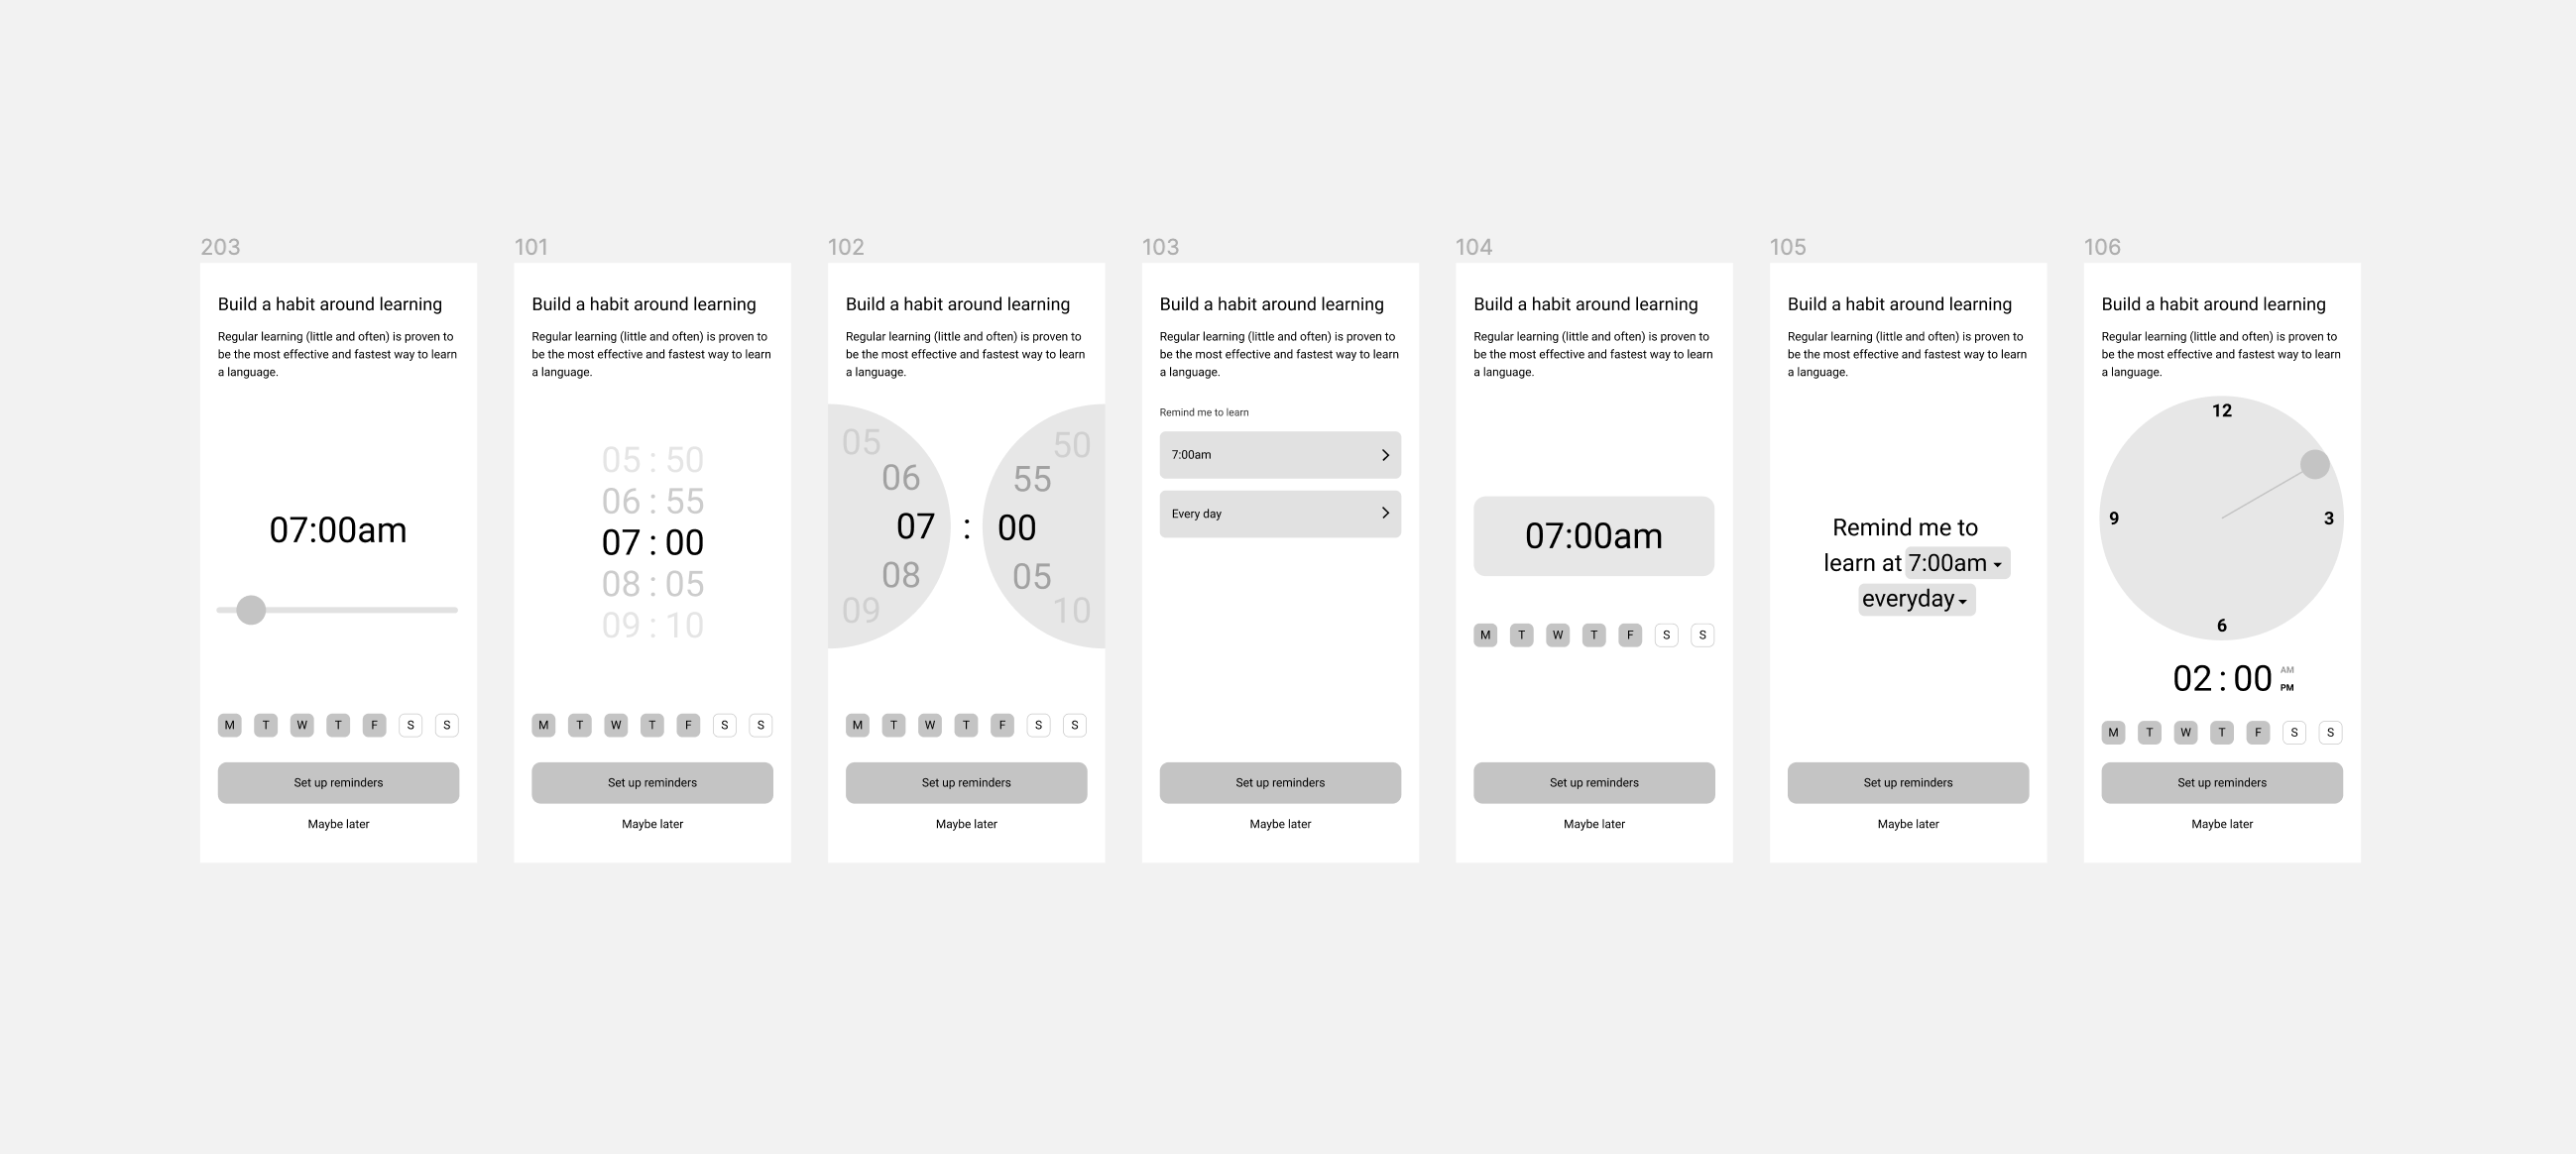 Early concepts for how users could input their learning schedule preferences